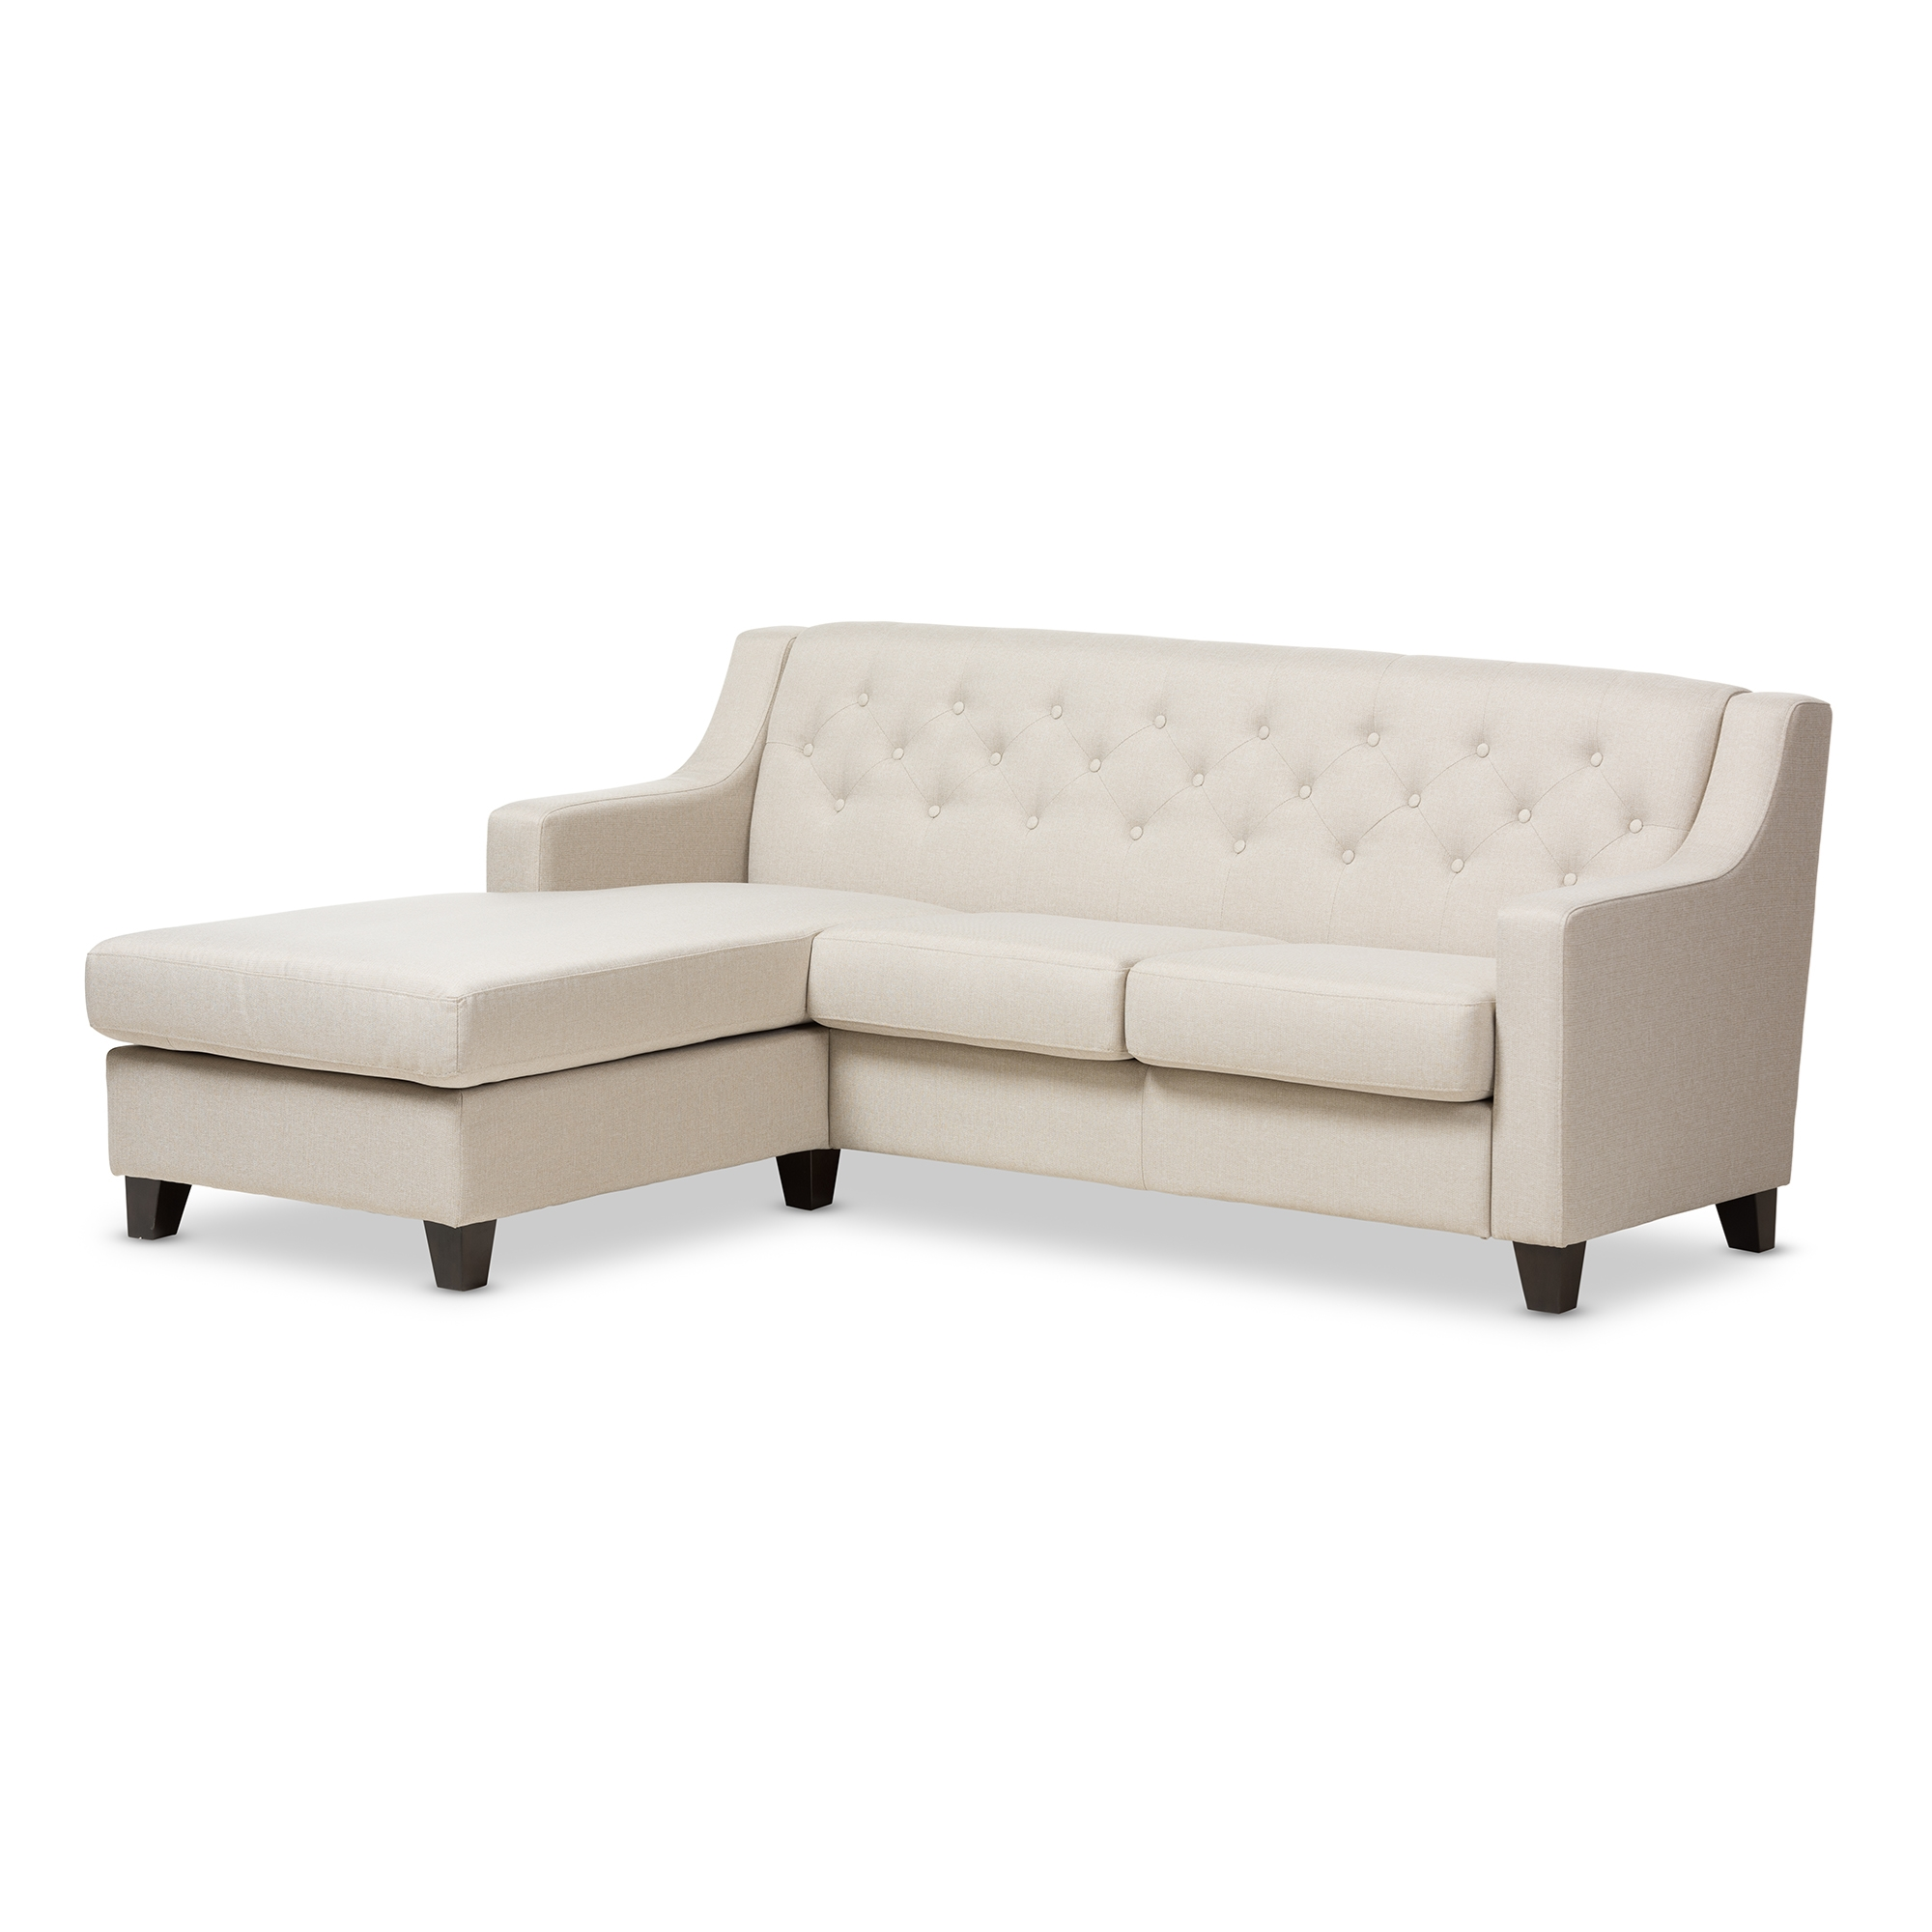 Baxton Studio Arcadia Light Beige Fabric Upholstered Button Tufted 2 Piece  Sectional Sofa Affordable